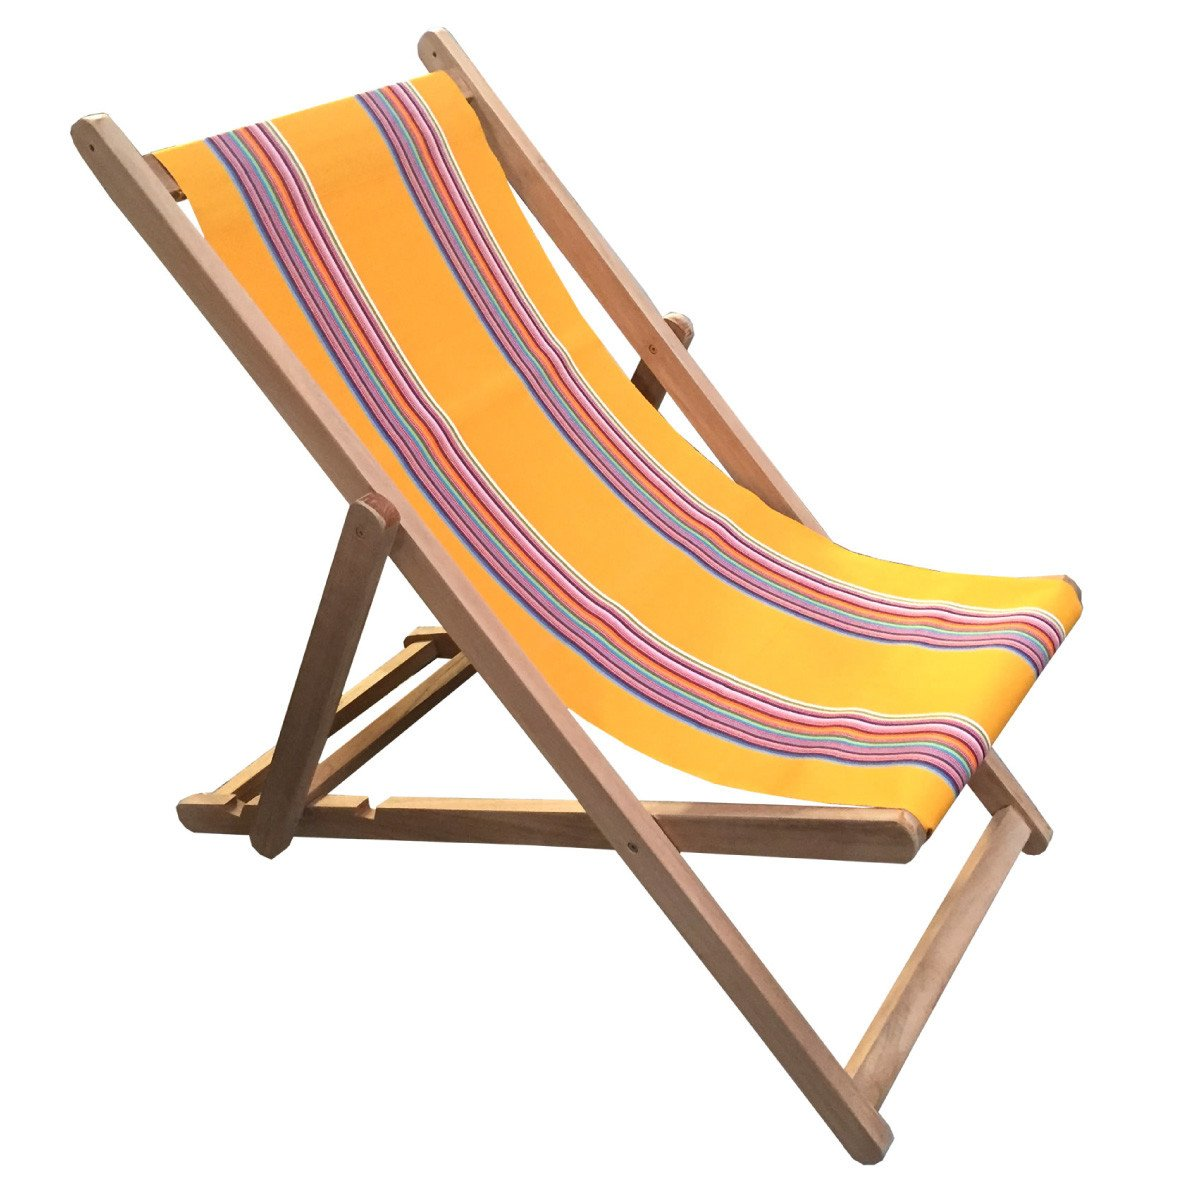 Butterfly Premium Teak Hardwood Striped Deckchair - Deckchair Stripes